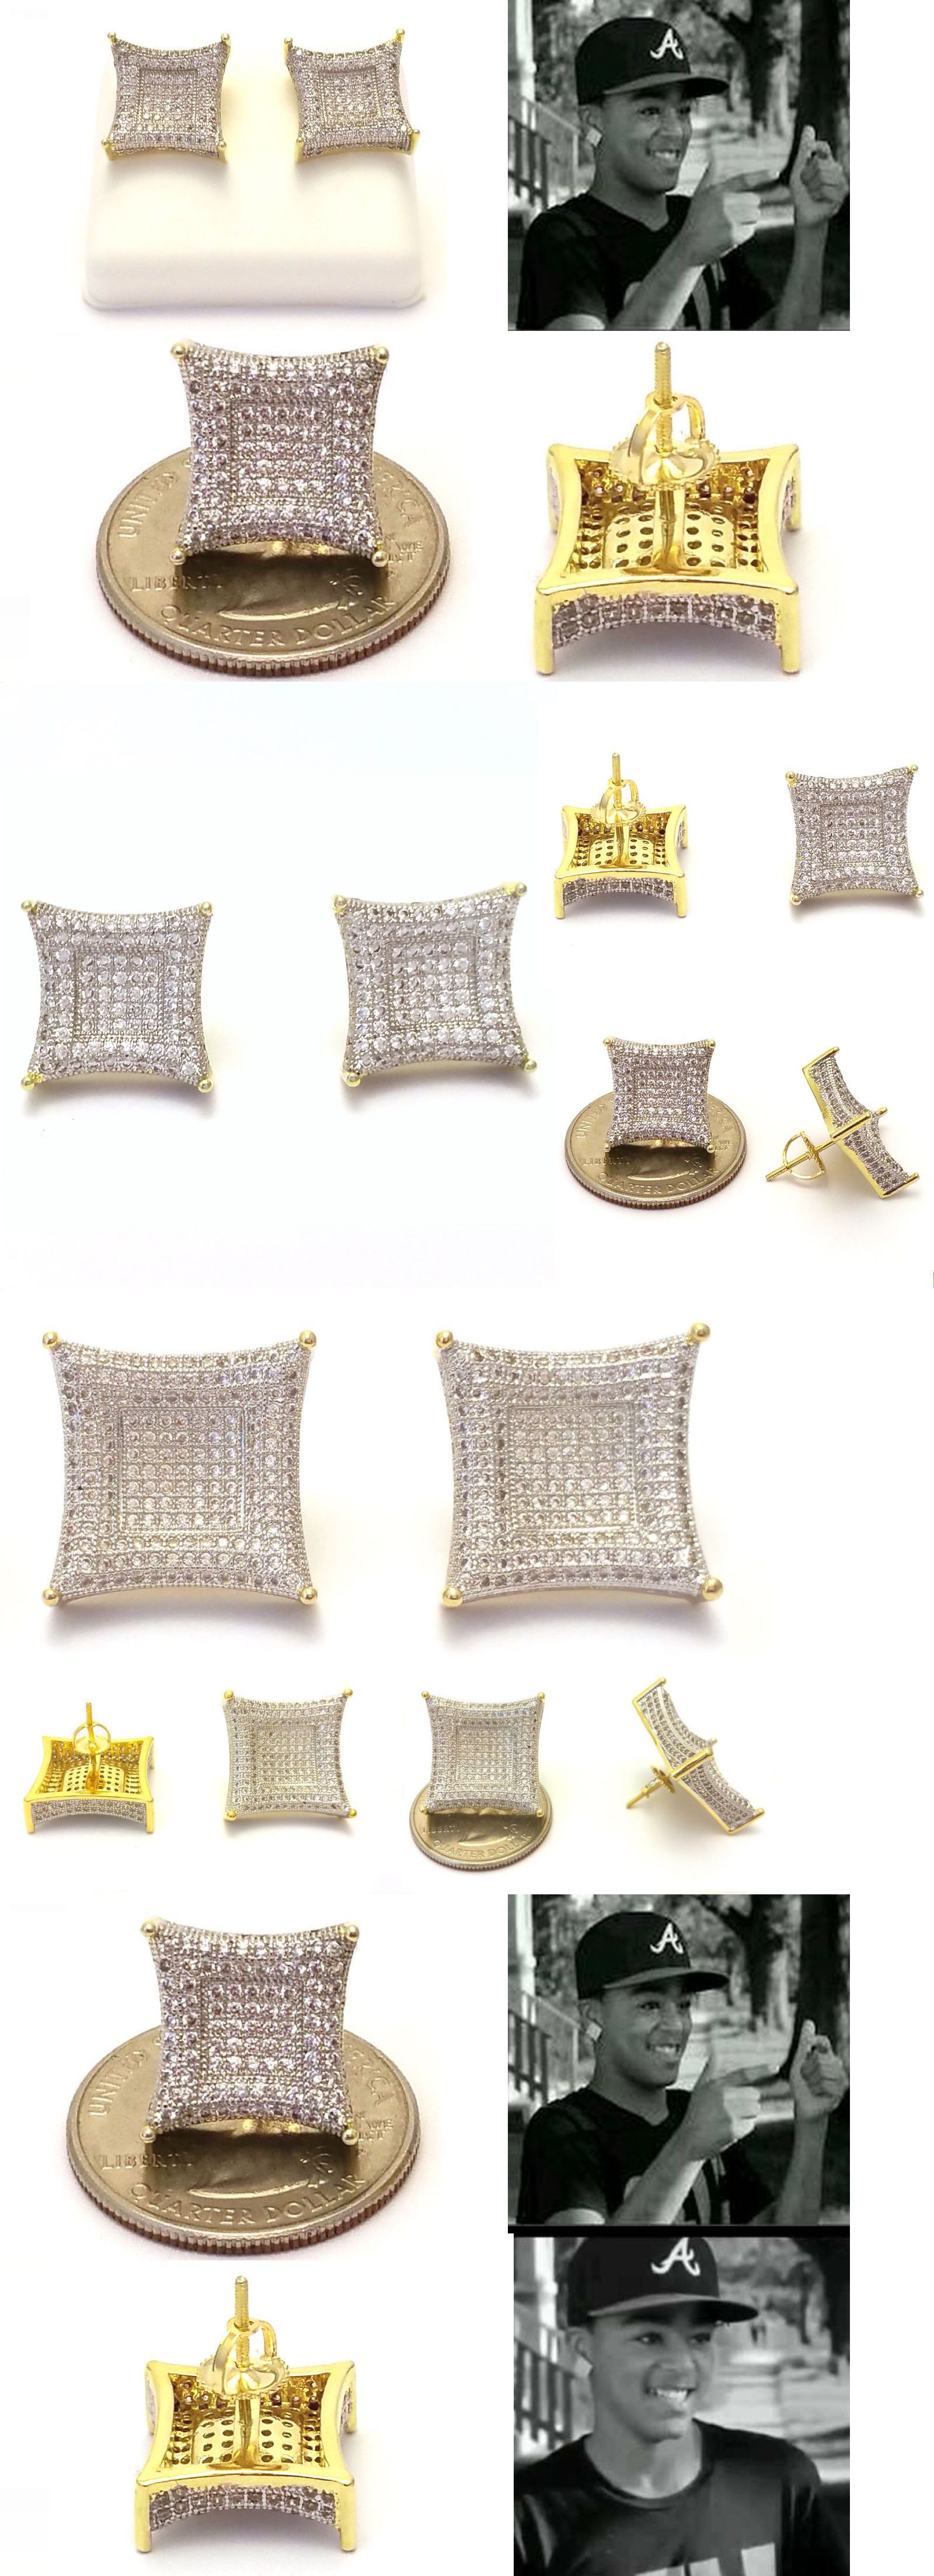 Lil jojo dead body pictures to pin on pinterest - Earrings Studs 14085 Lil Jojo Iced Out 18k Yellow Gold Finish Lab Diamond Screw Back